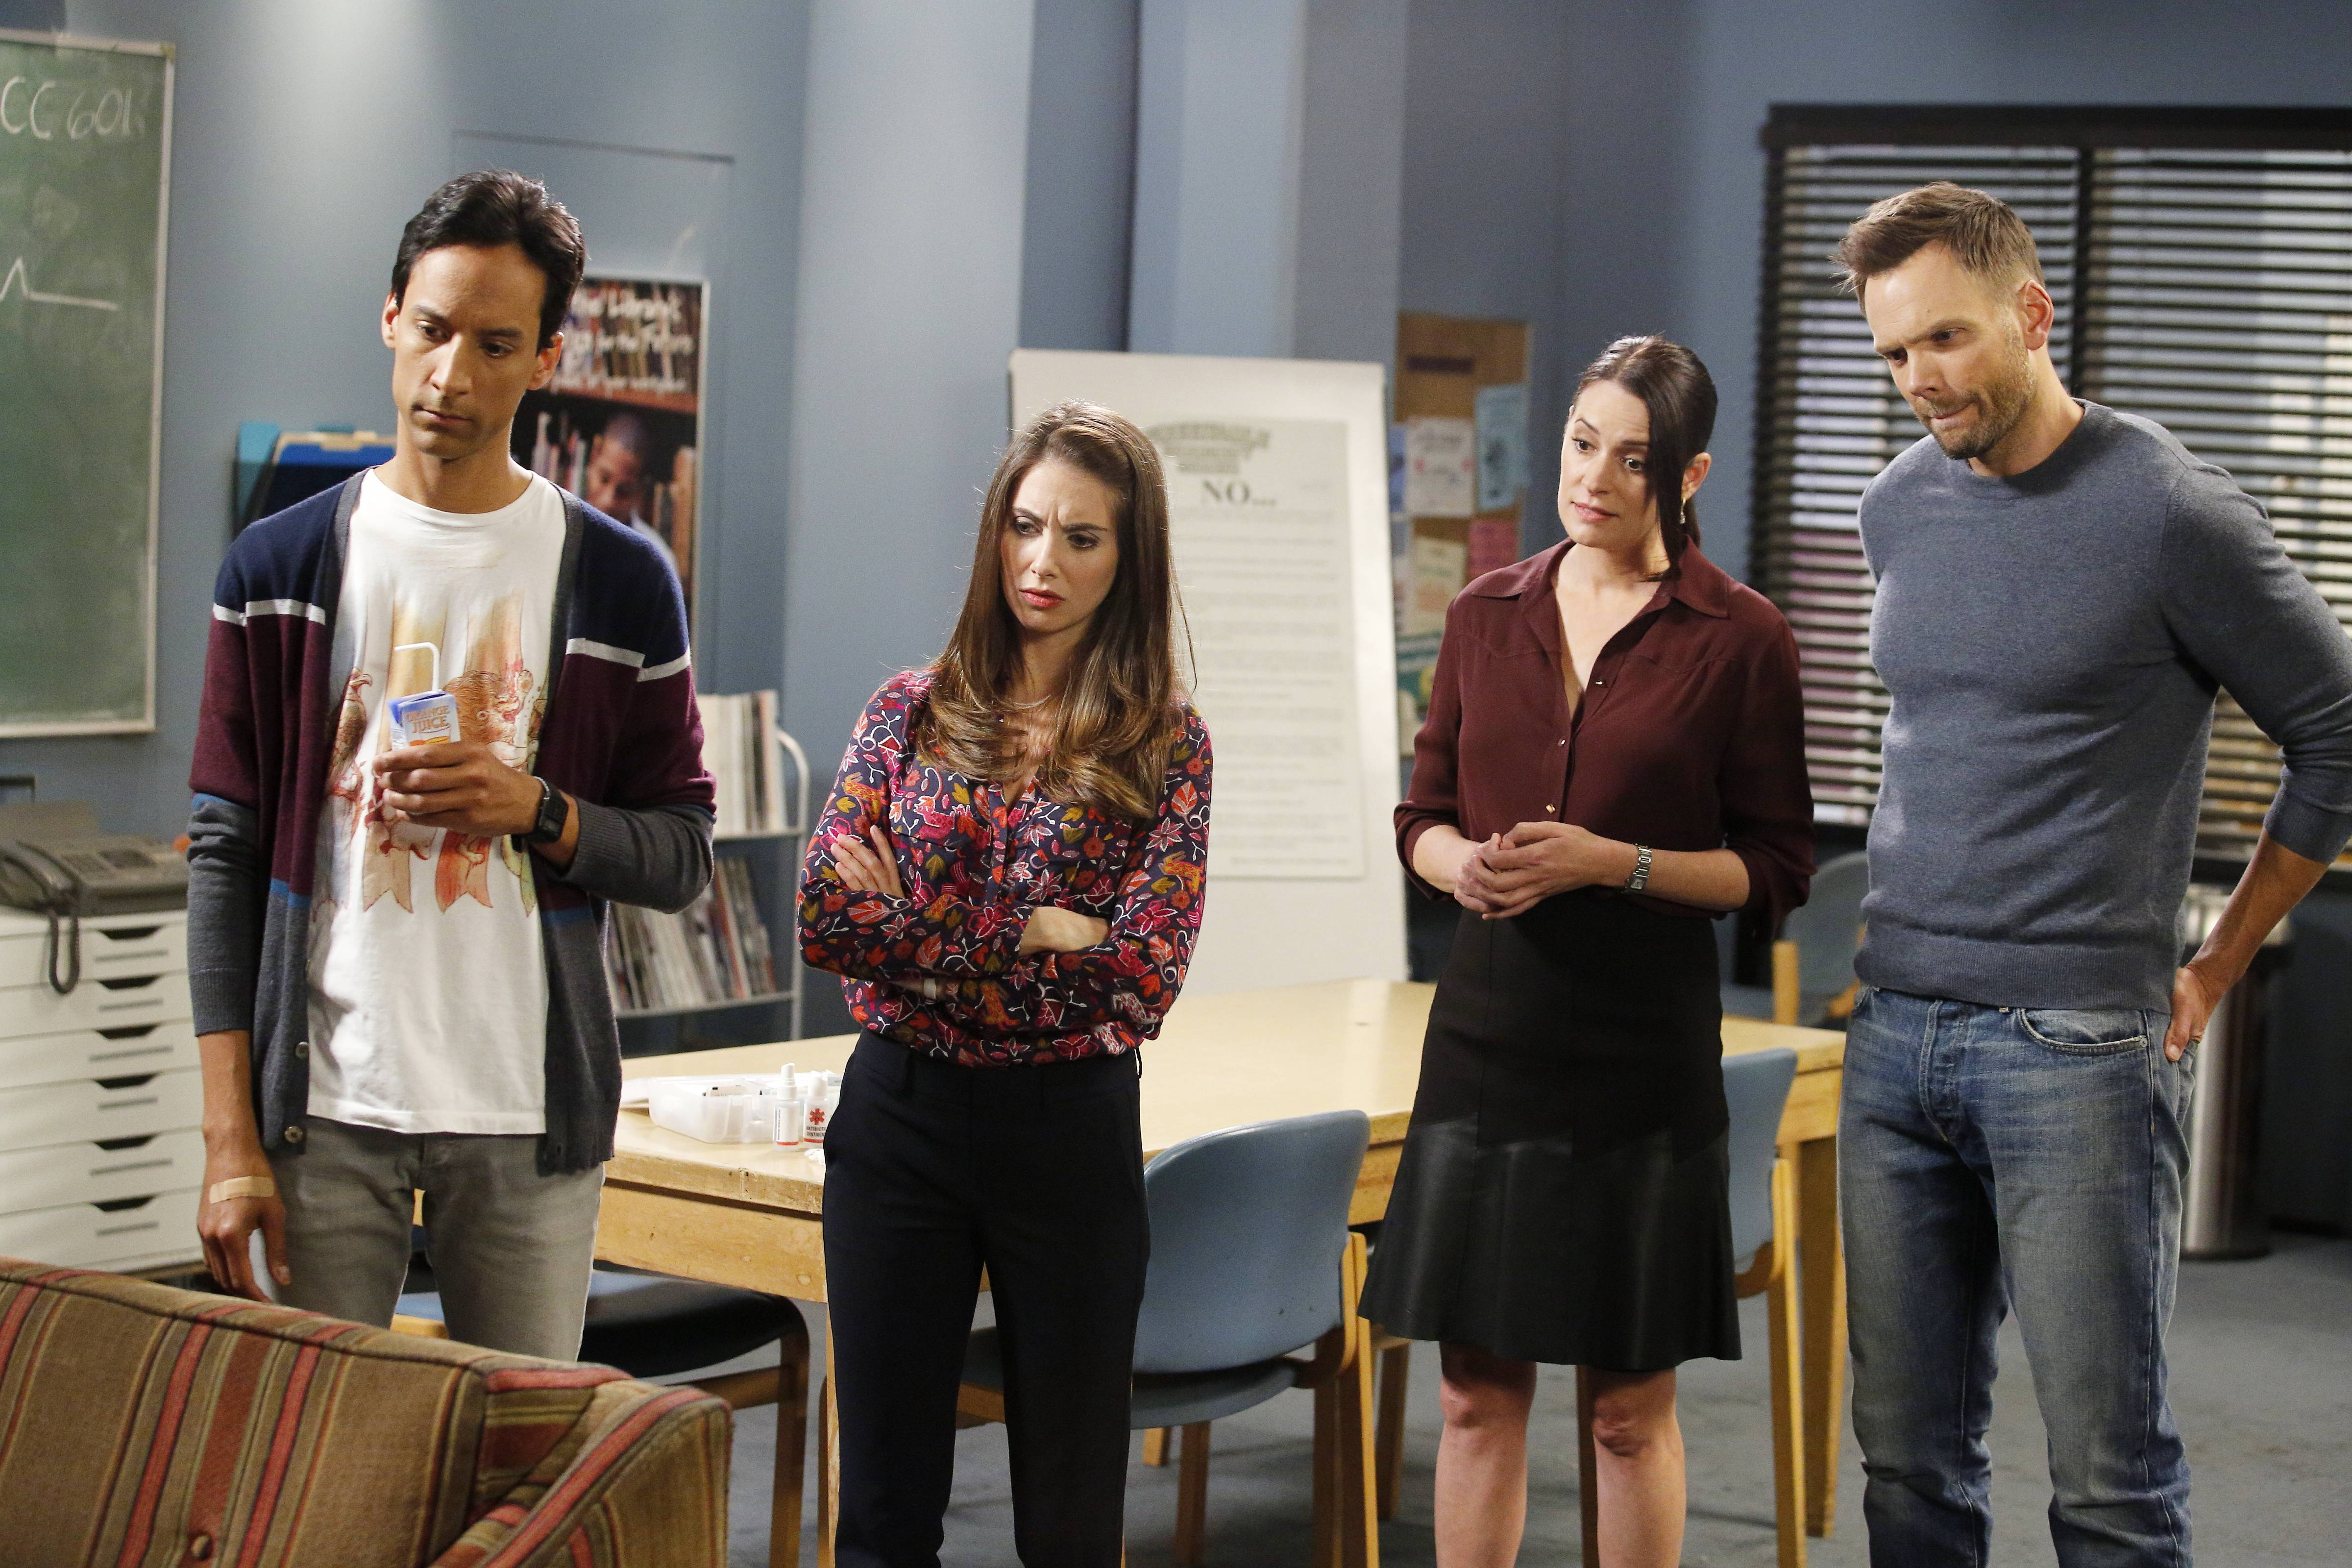 Everything you need to know about Community's season premiere, in 5